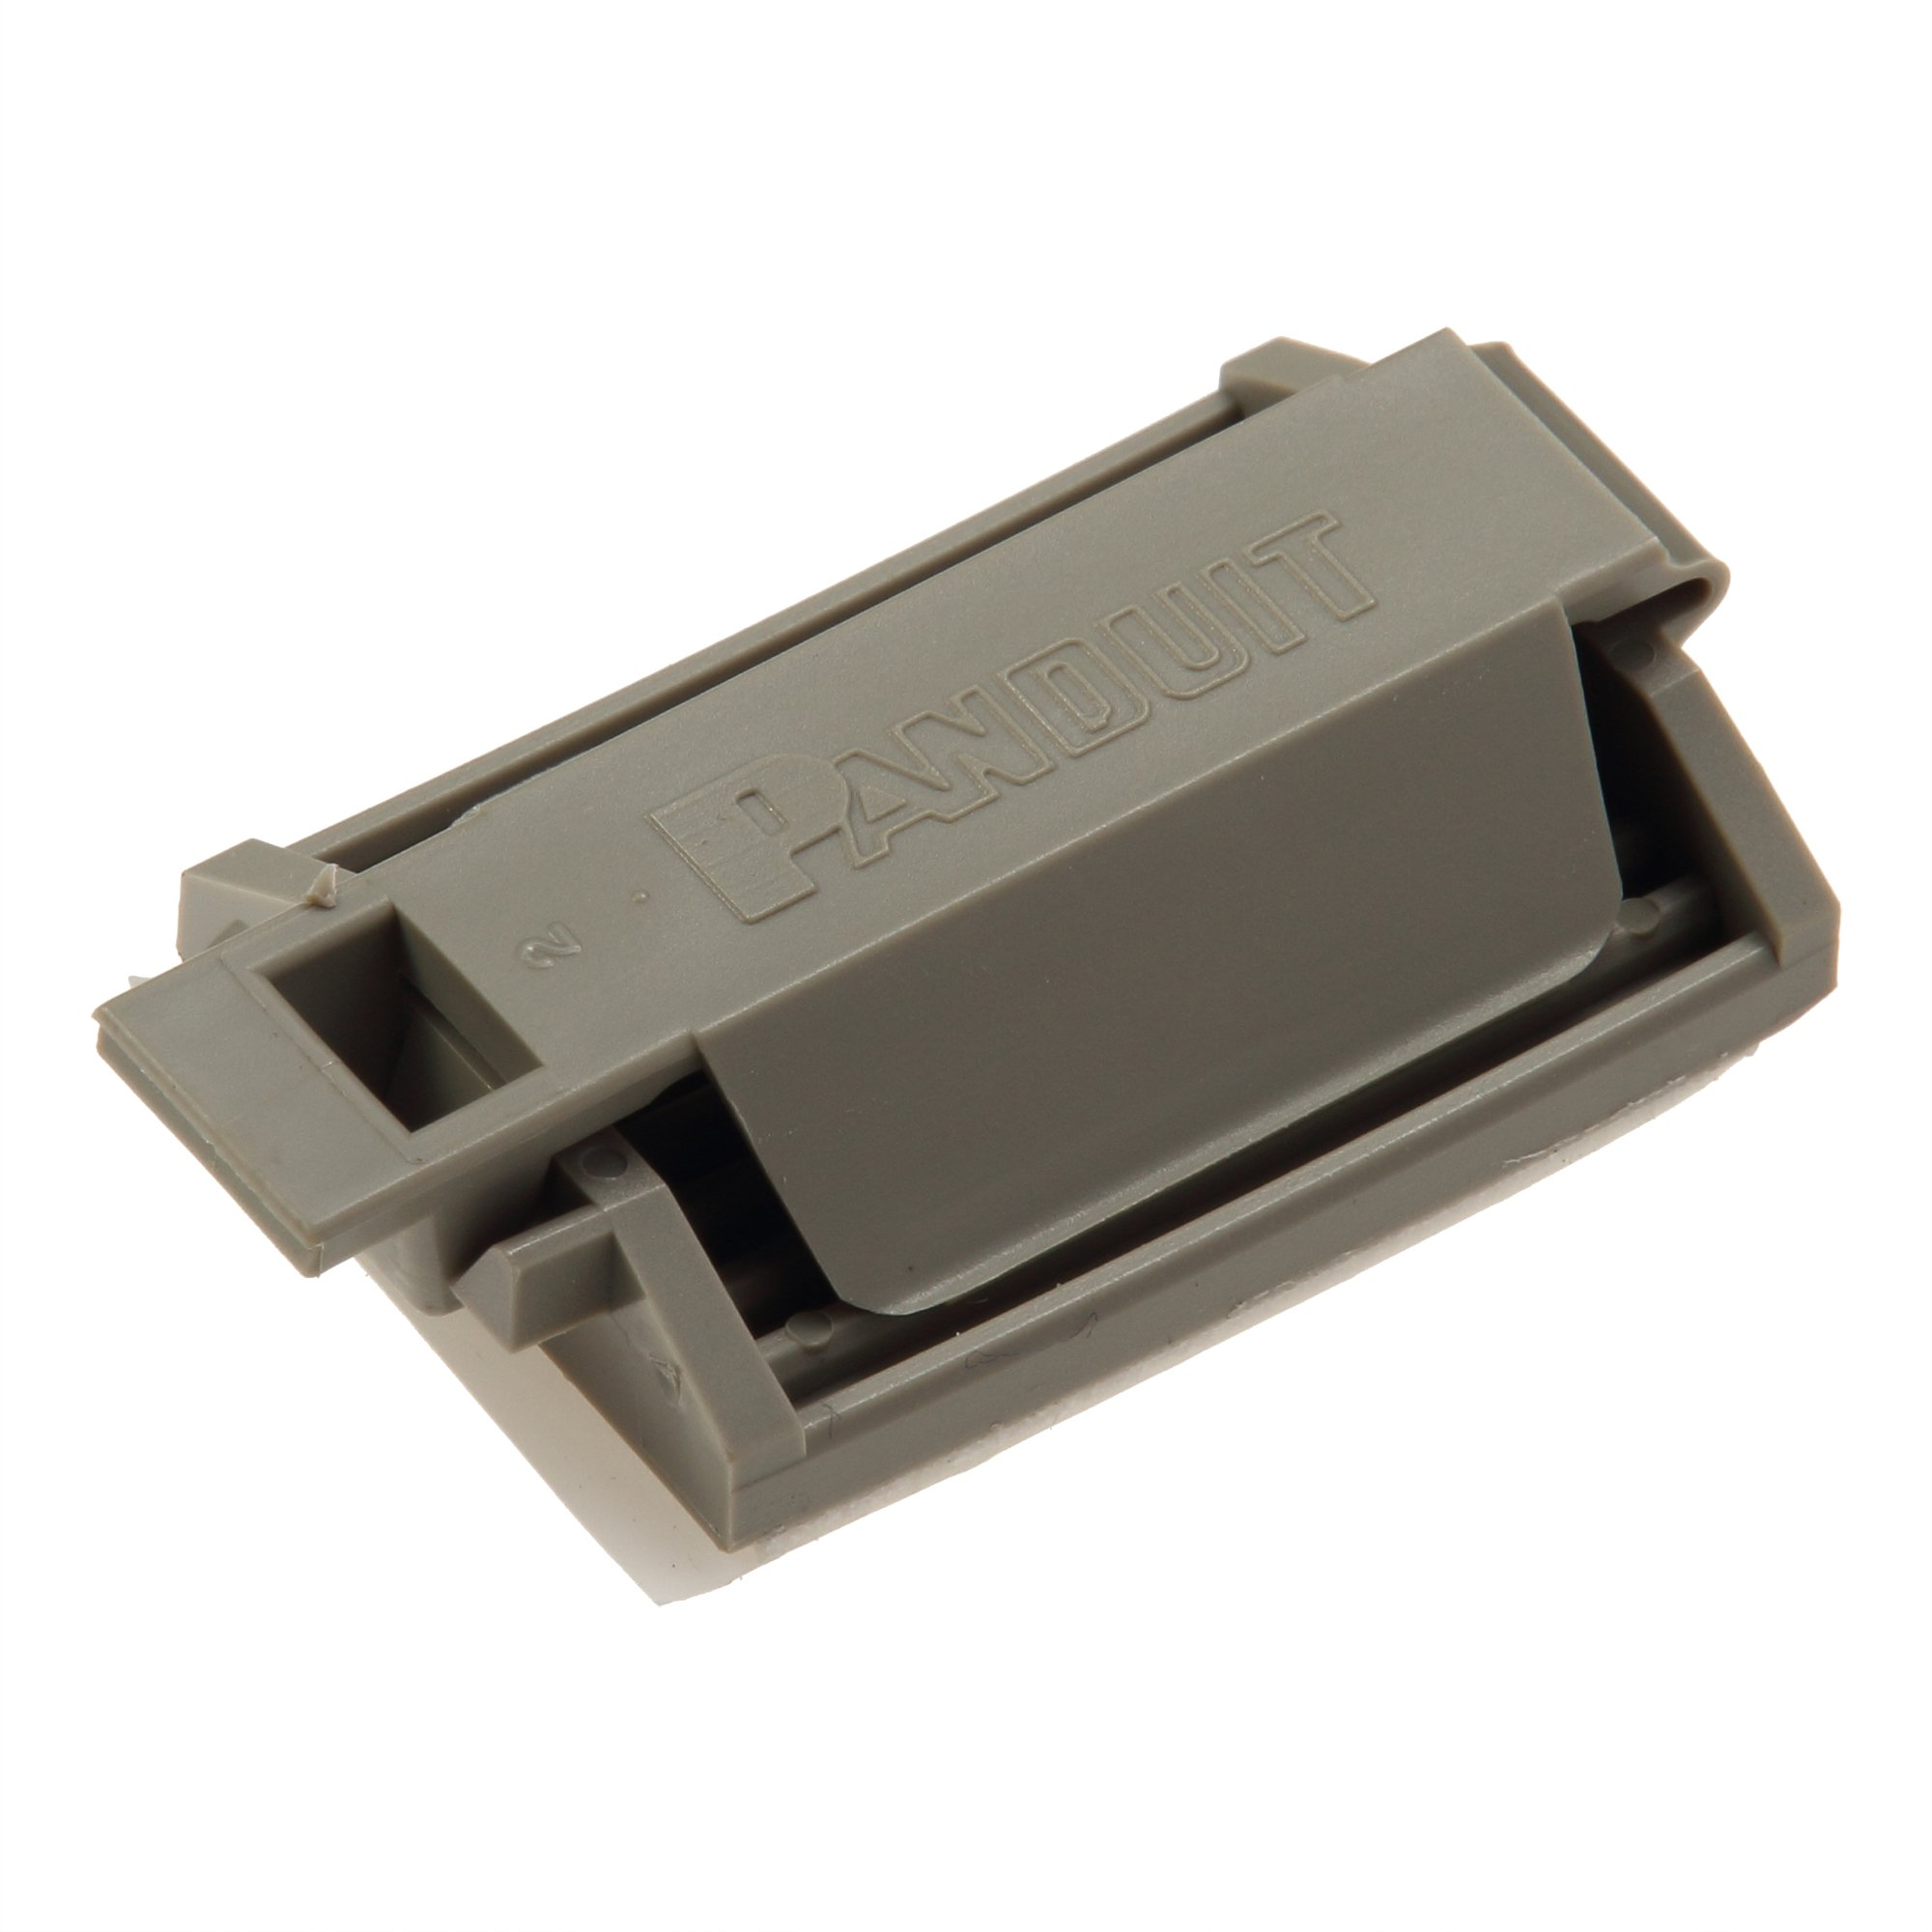 Panduit FCM2-A-C14 Latching Flat Cable Mount, Adhesive Backed, Rubber Adhesive Mounting Method, Gray (100-Pack)